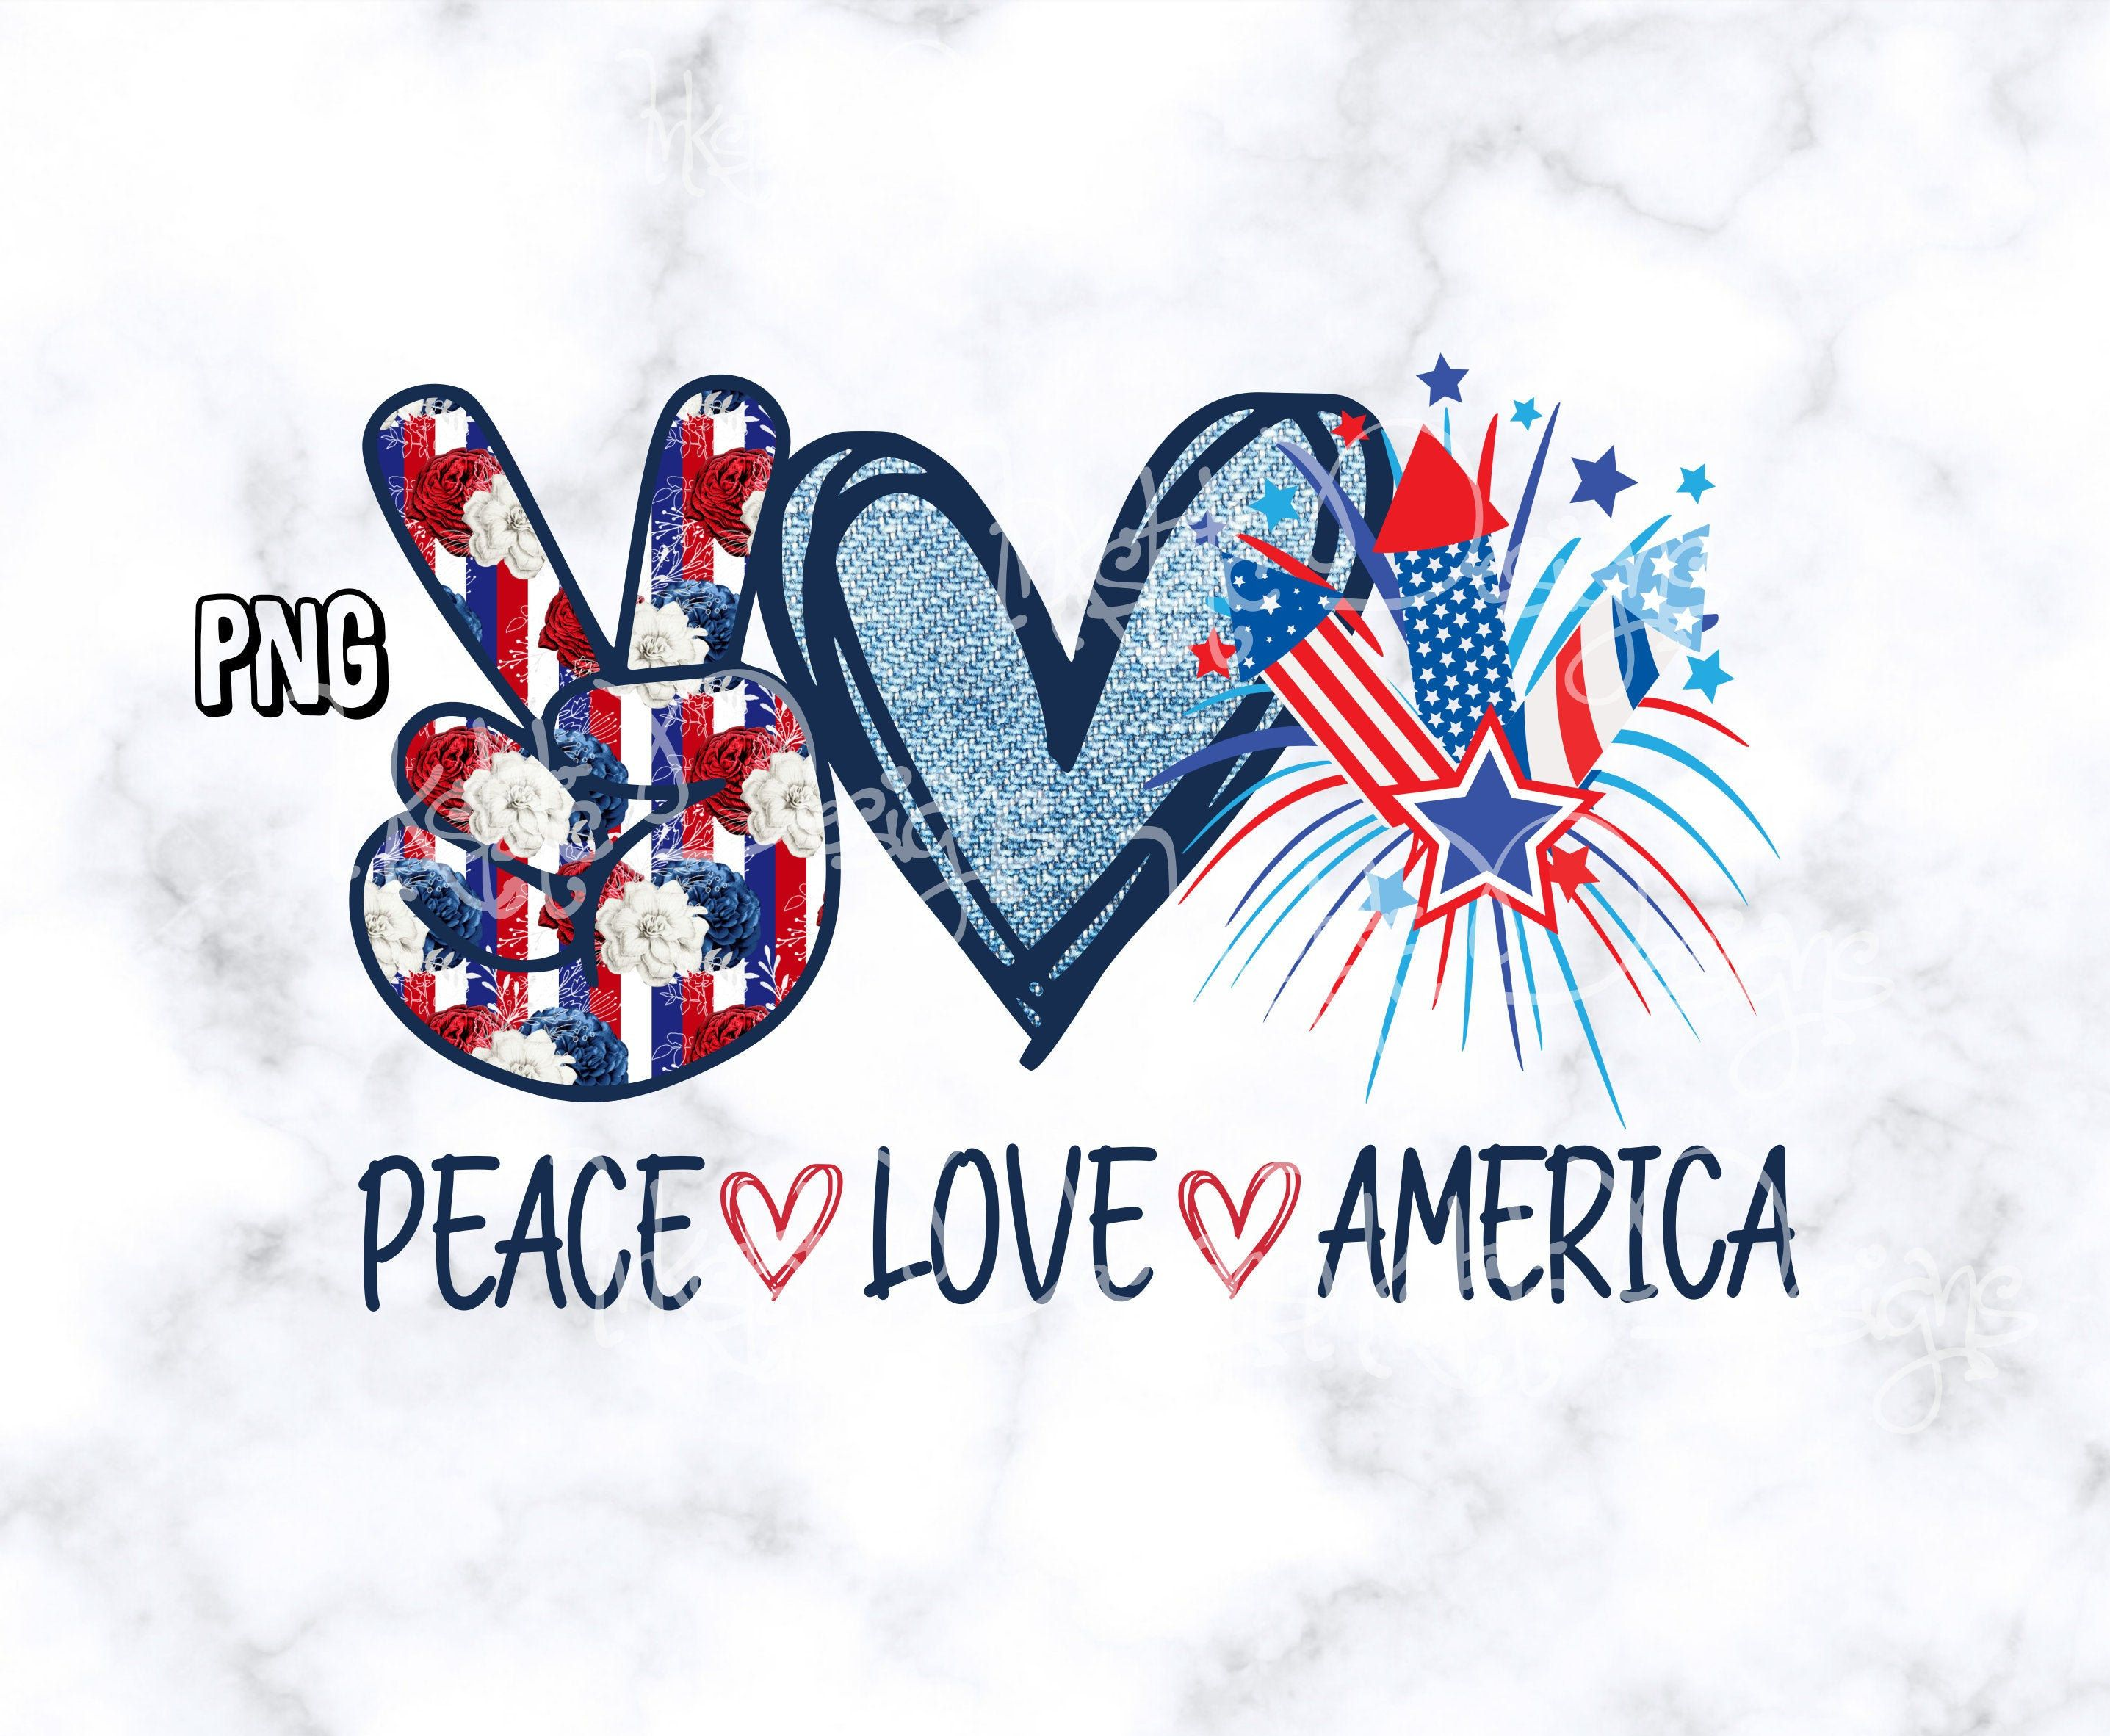 Peace Love America 300 Dpi Png Fourth Of July Design Etsy In 2020 Fourth Of July Pics Peace And Love Fourth Of July